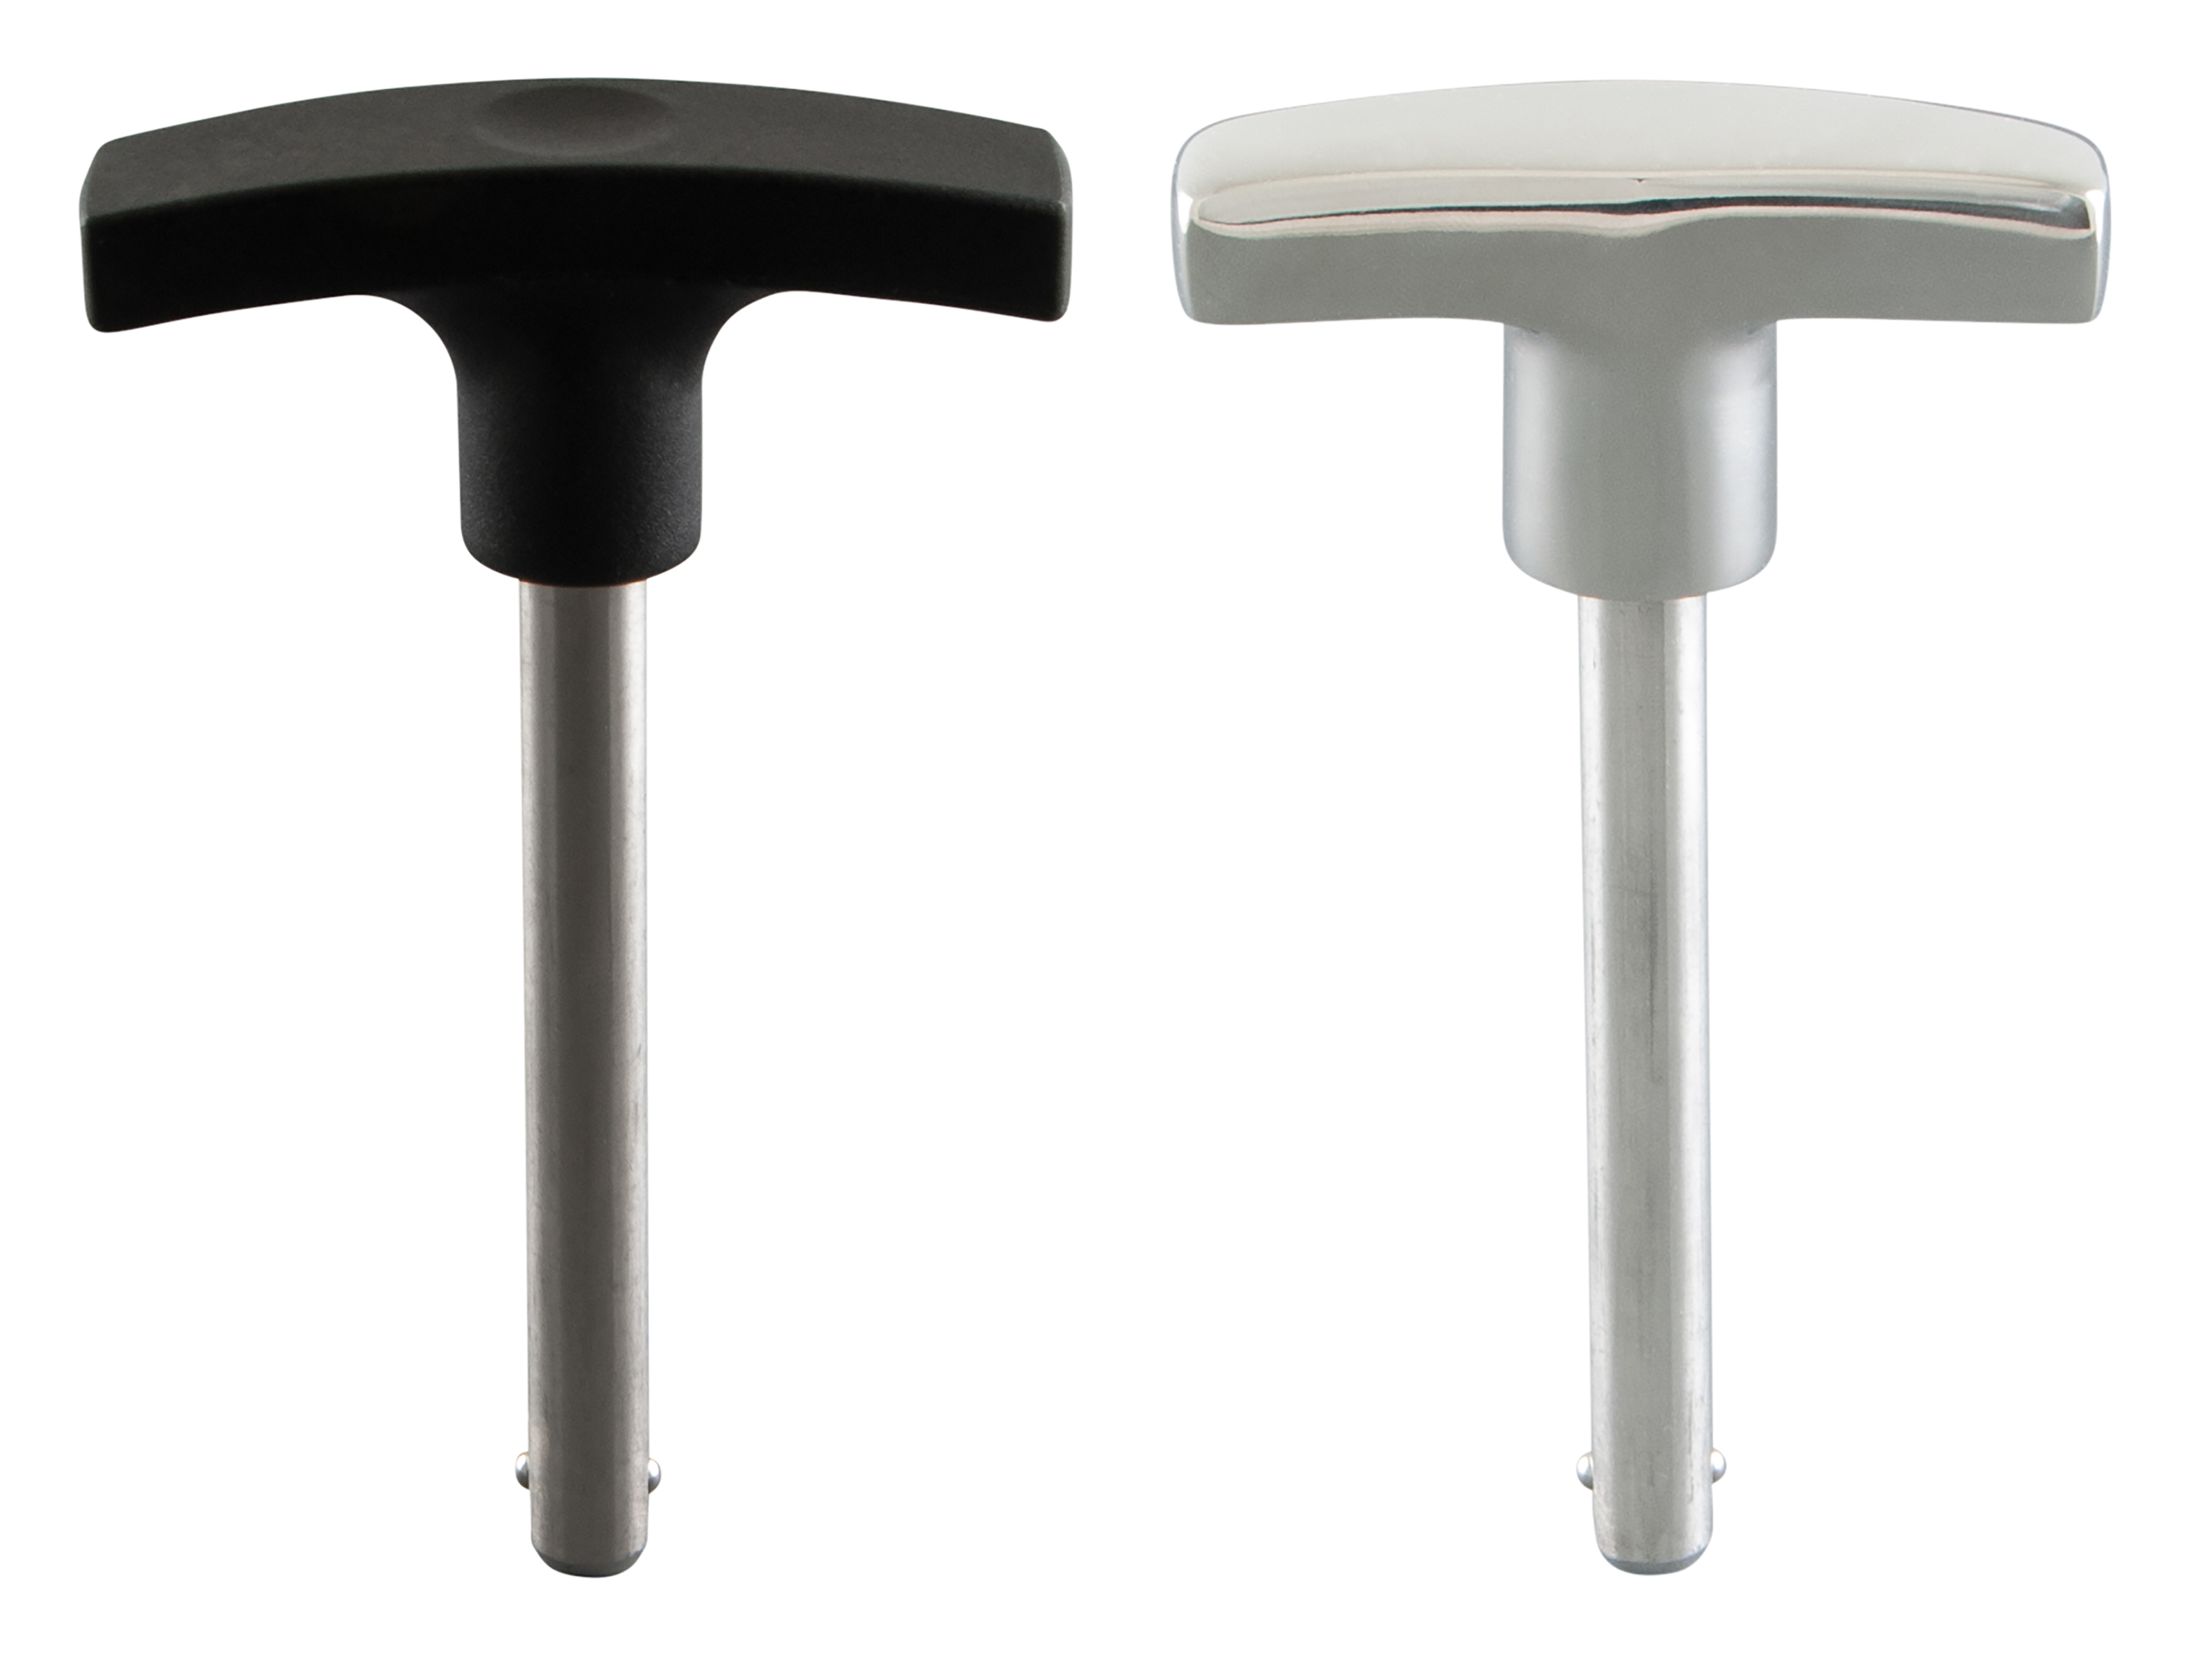 WDS detent pins now available with range of handles for ease of use